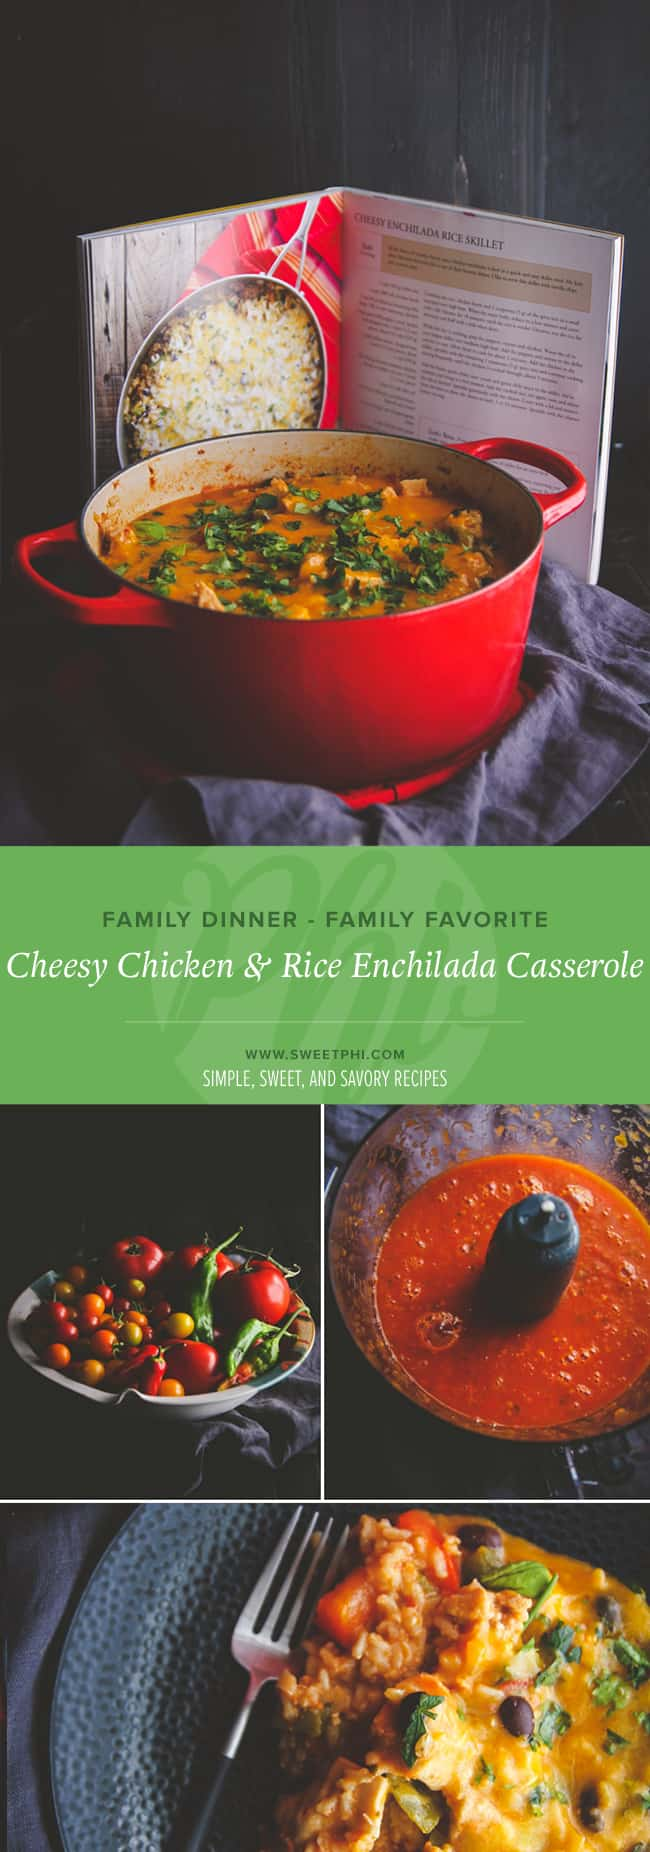 Family meal favorite - cheesy chicken and rice enchilada casserole